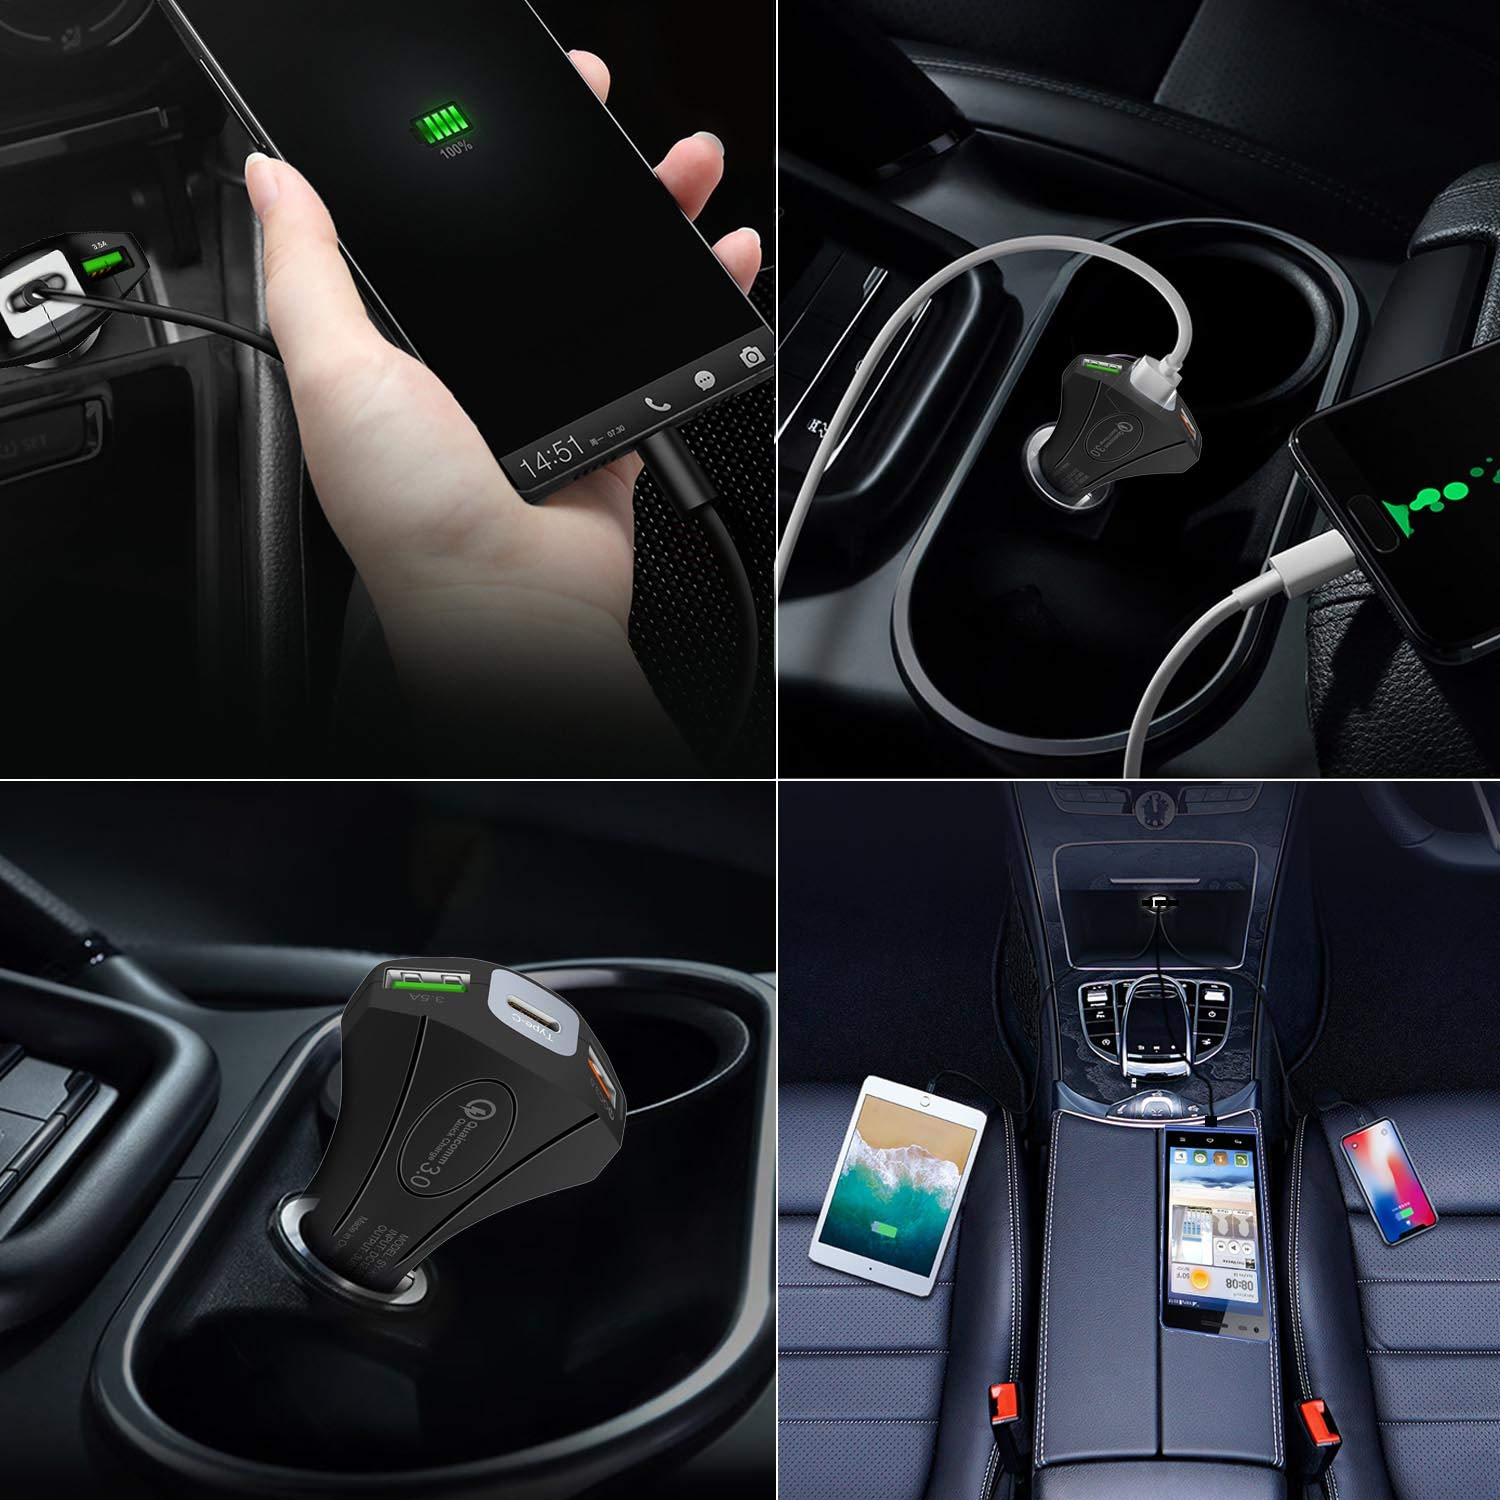 35W 3-Port Fast Car Charger Adapter with Dual USB QC 3.0 /& Type C Port Power Delivery for iPhone 11//Pro//Max//XS//XR//X//8,iPad Pro//Air,Samsung Galaxy S10//S9//Plus,Google Pixel IMustech Car Charger